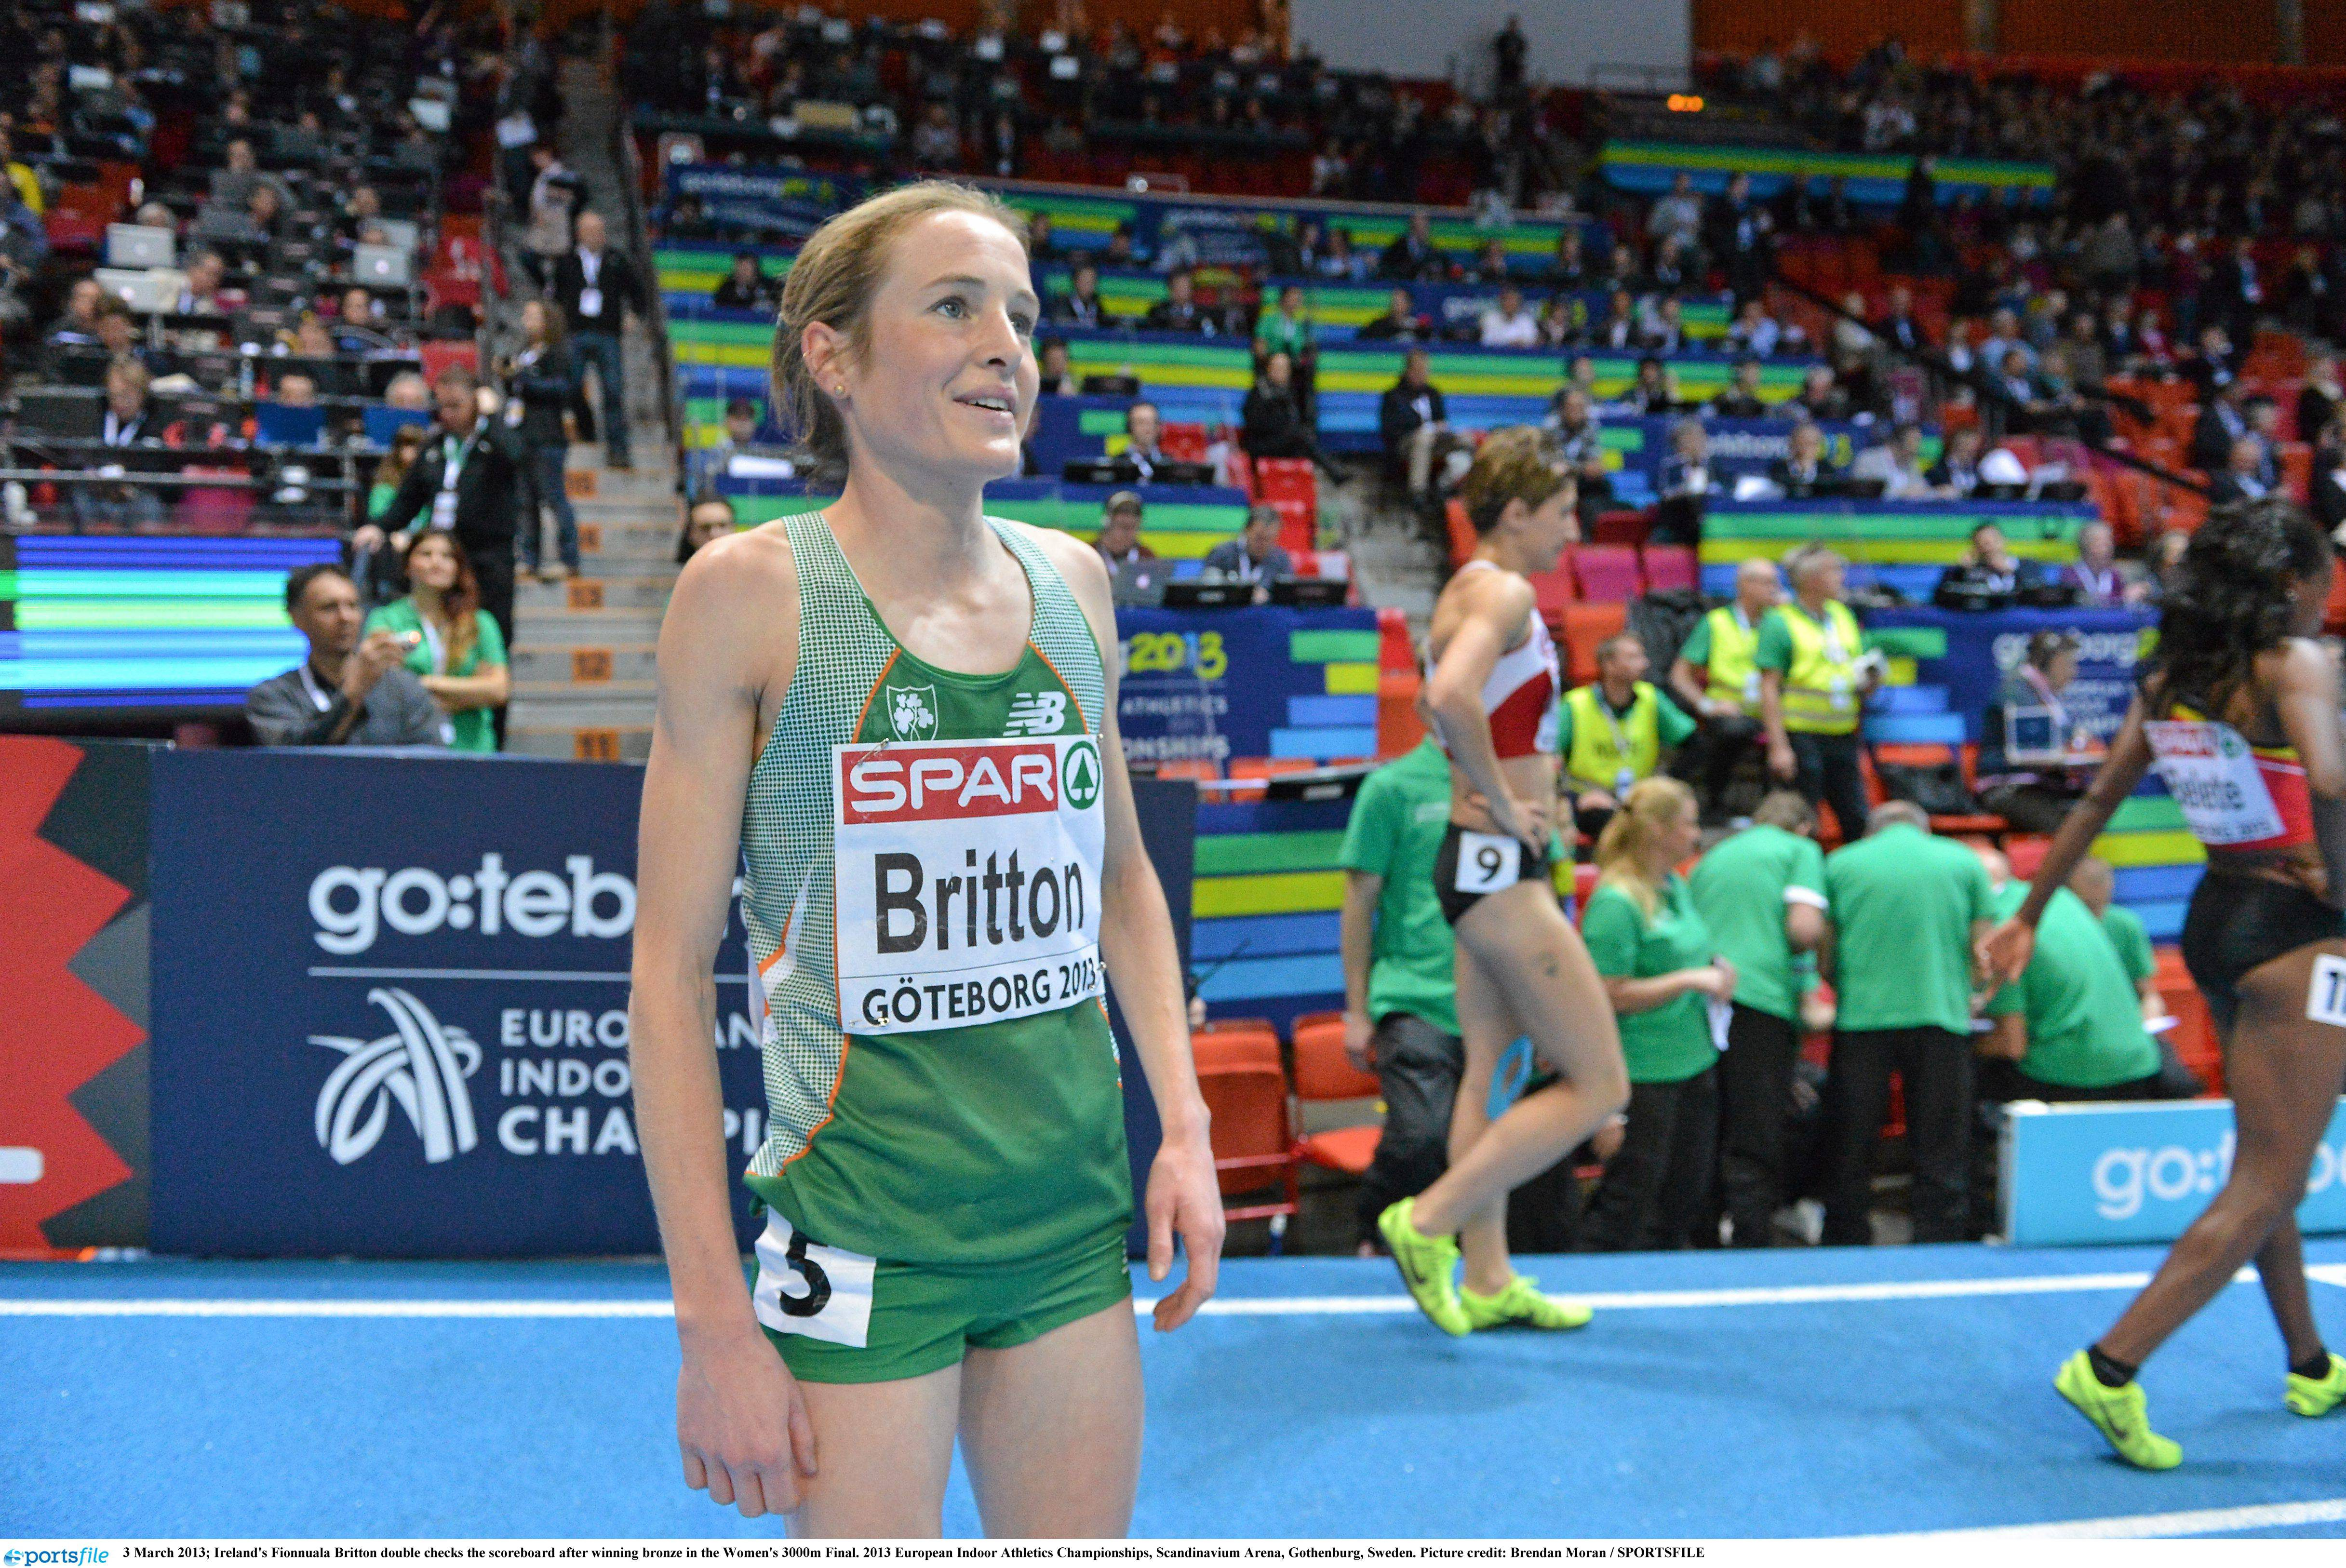 2013 European Indoor Athletics Championships – Sunday 3rd March